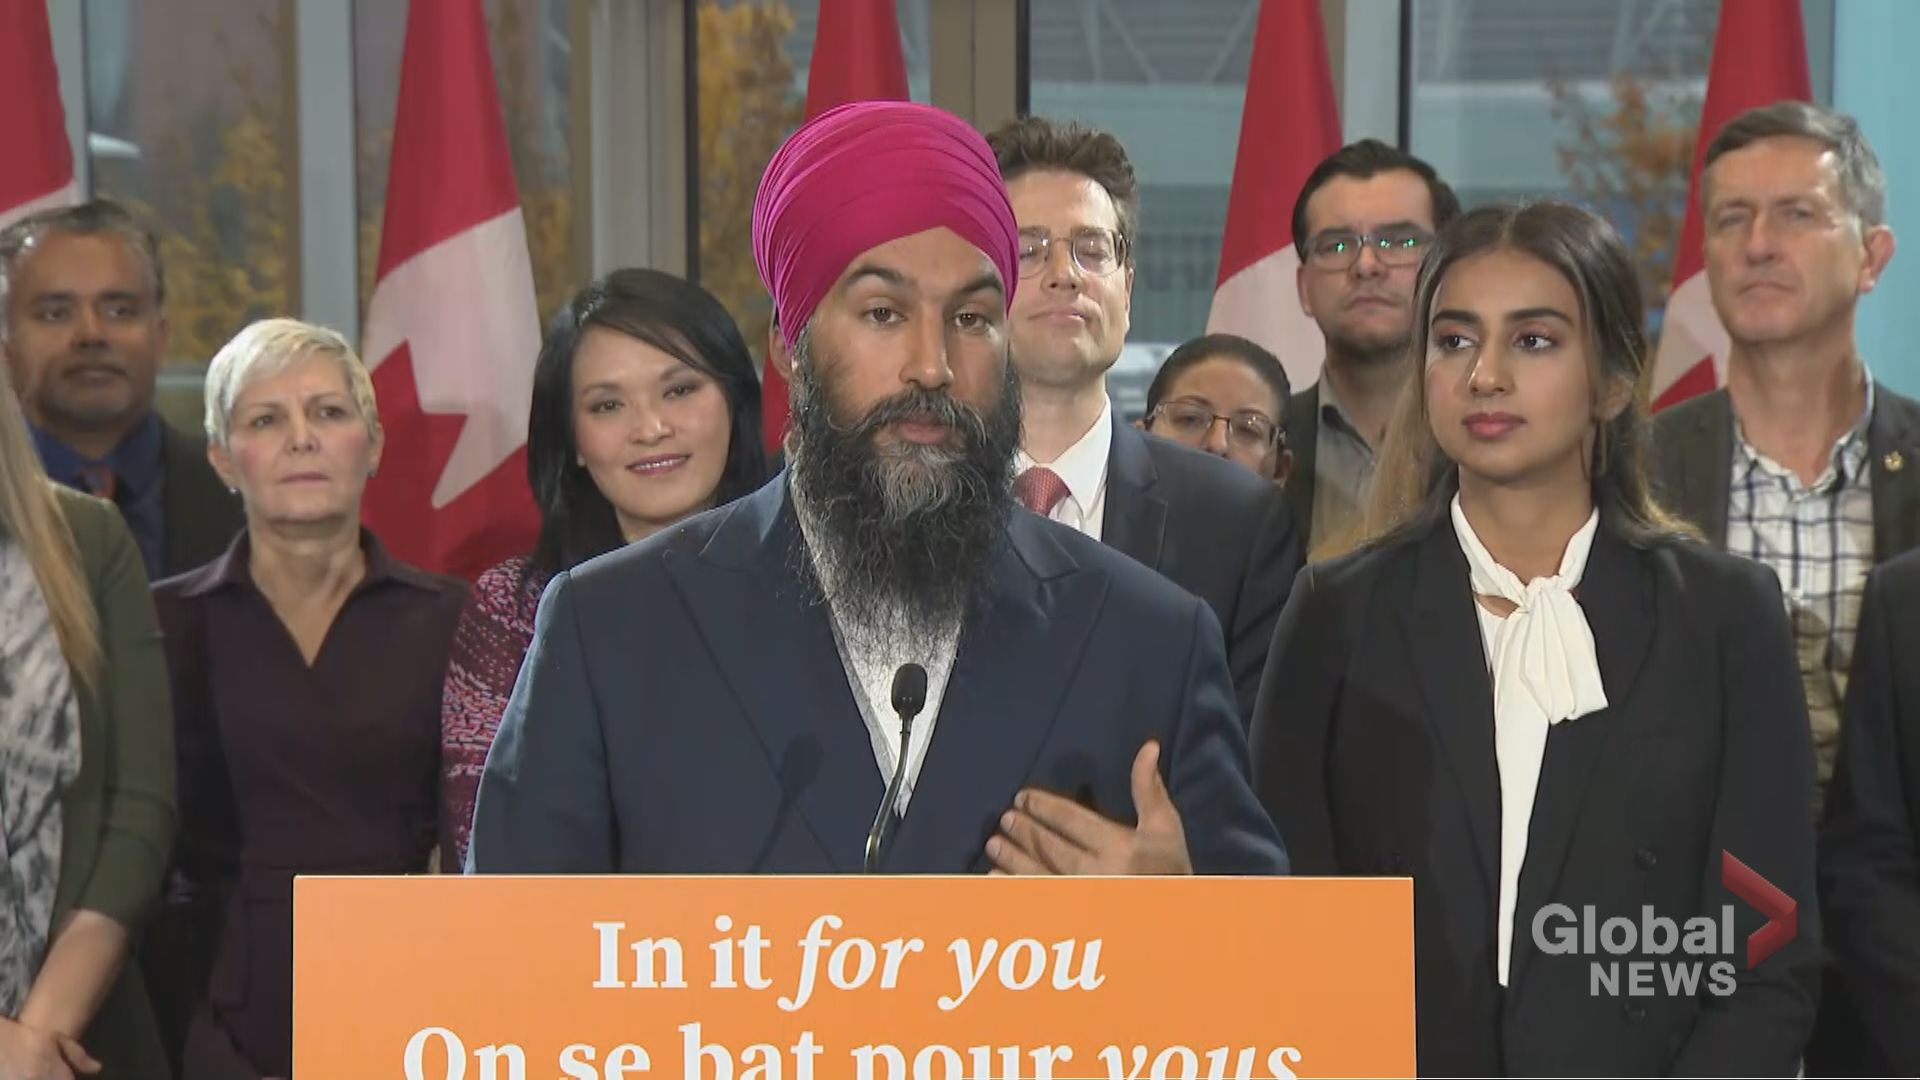 Federal Election 2019: Singh says he's committed to making young people feel 'engaged'